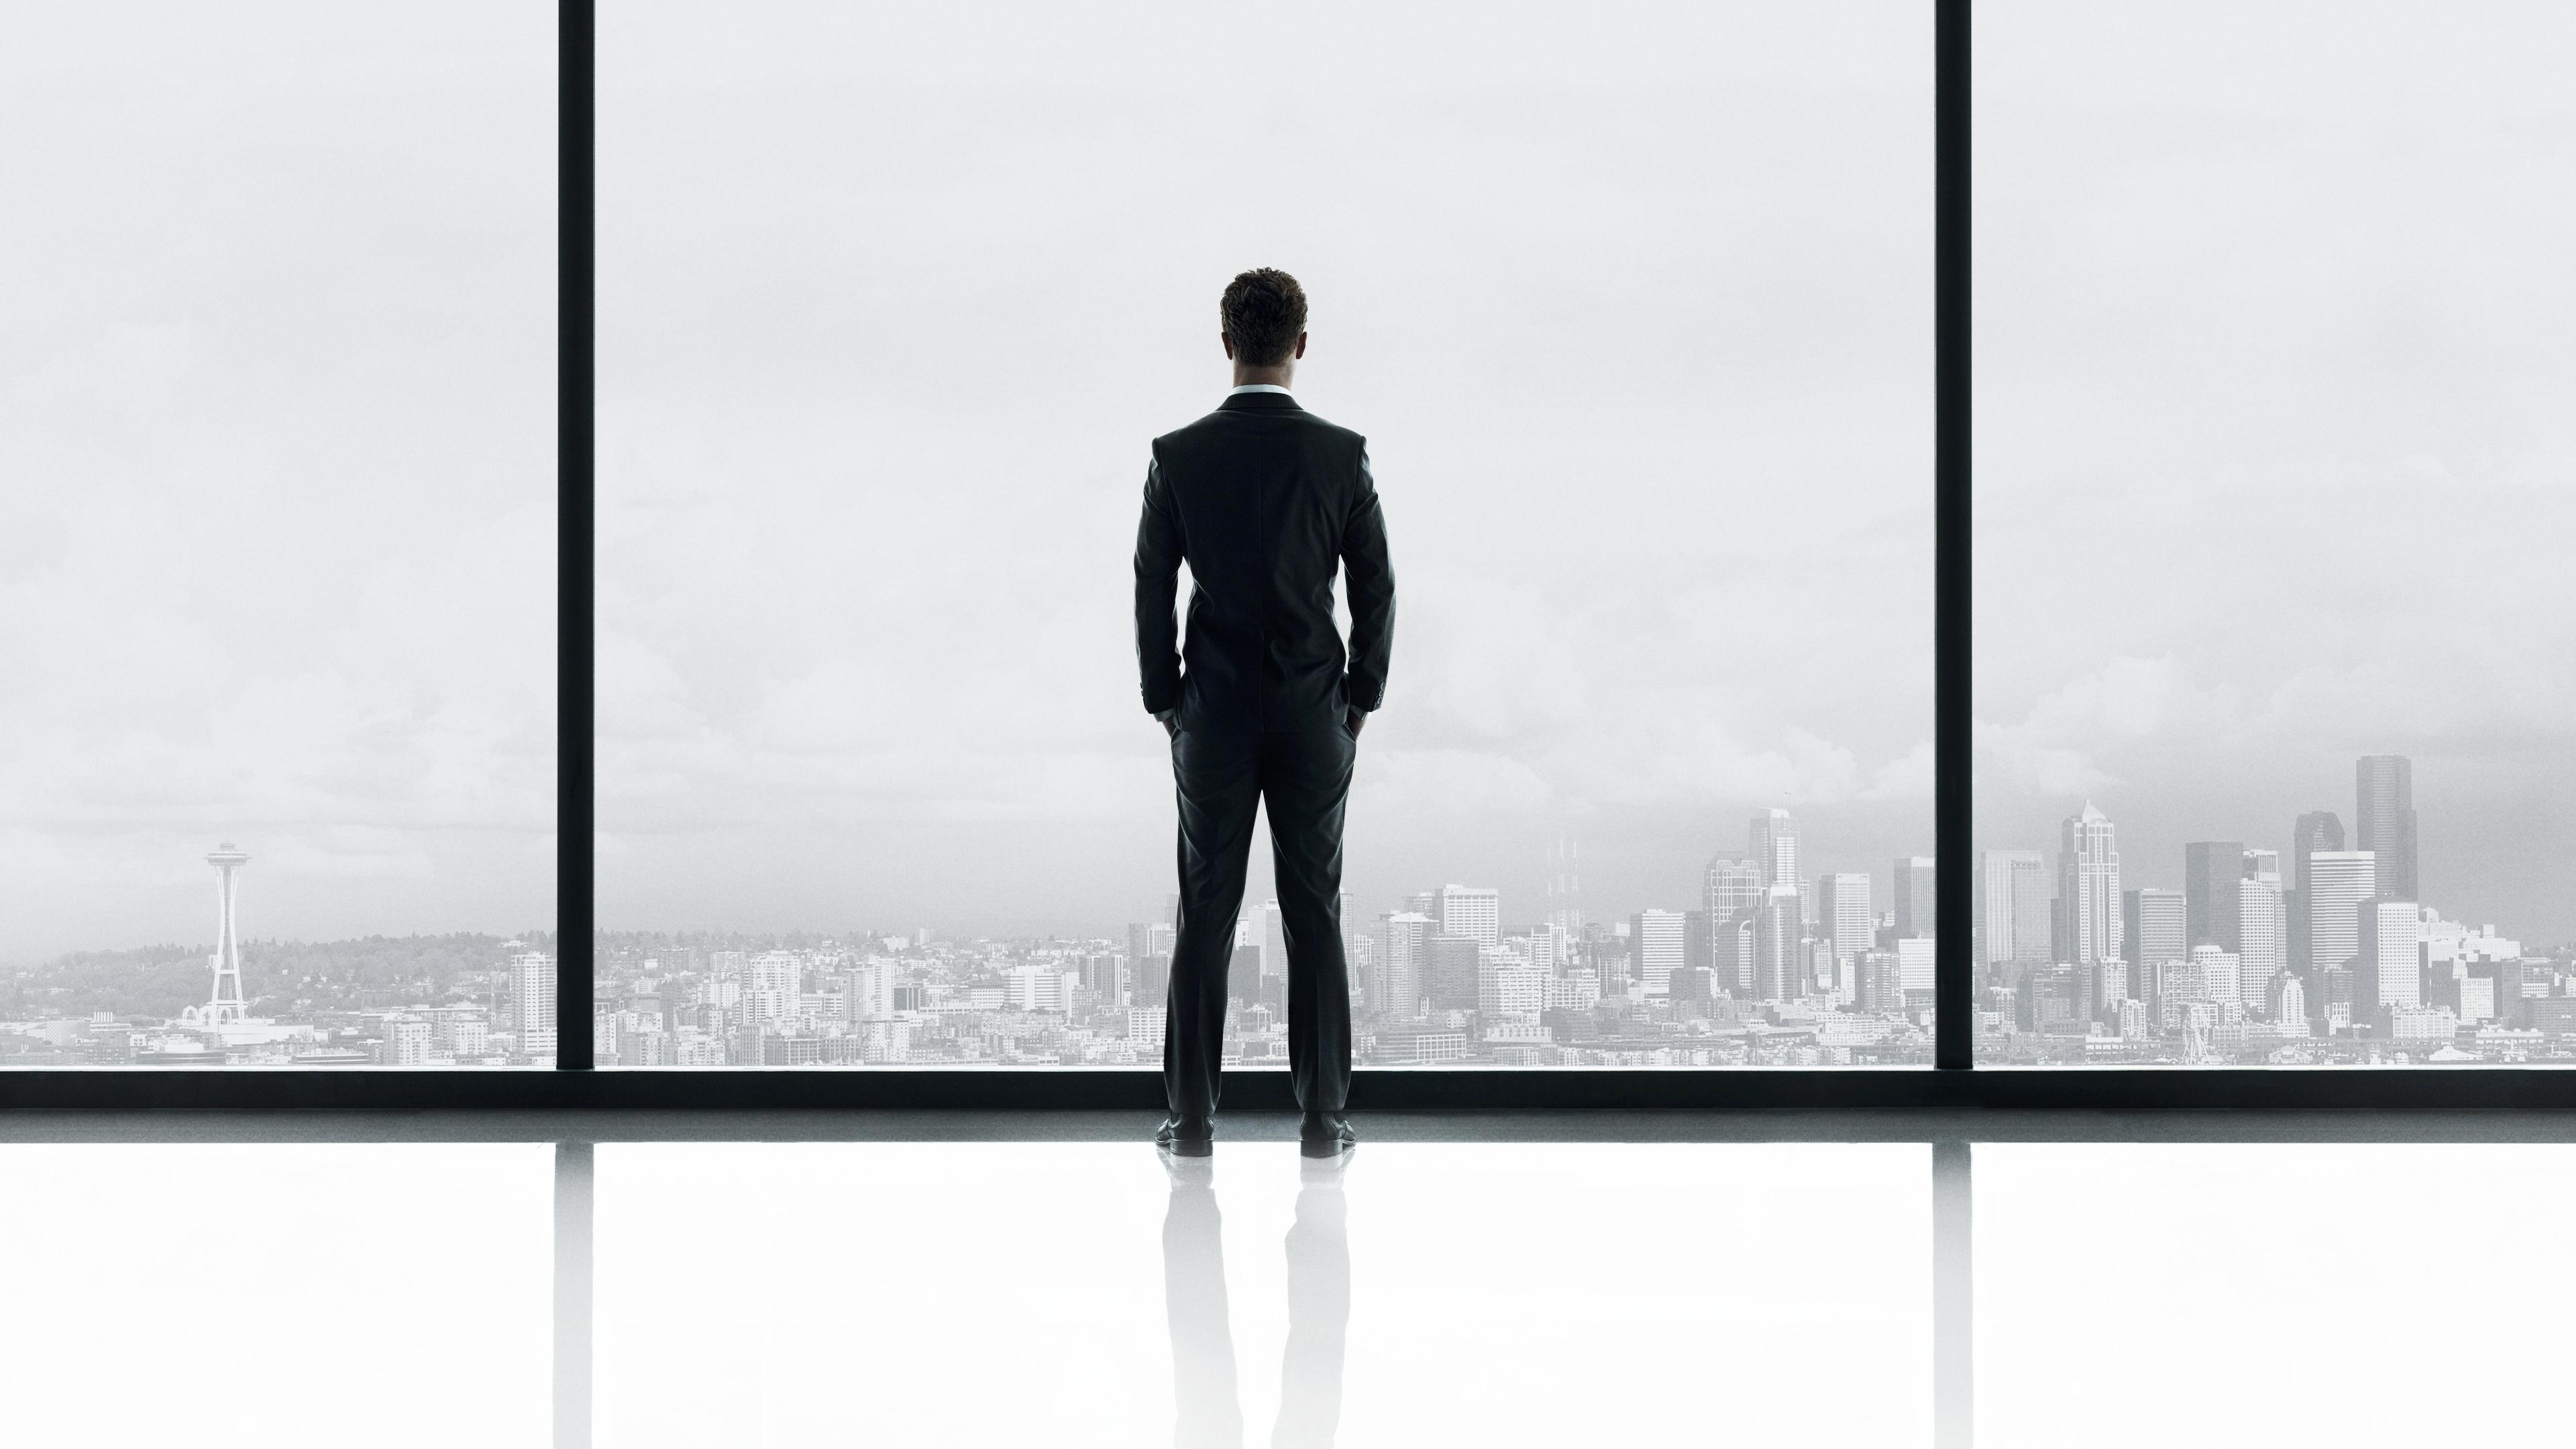 The Most Viewed Trailers Of 2014 39 Fifty Shades 39 Edges Out